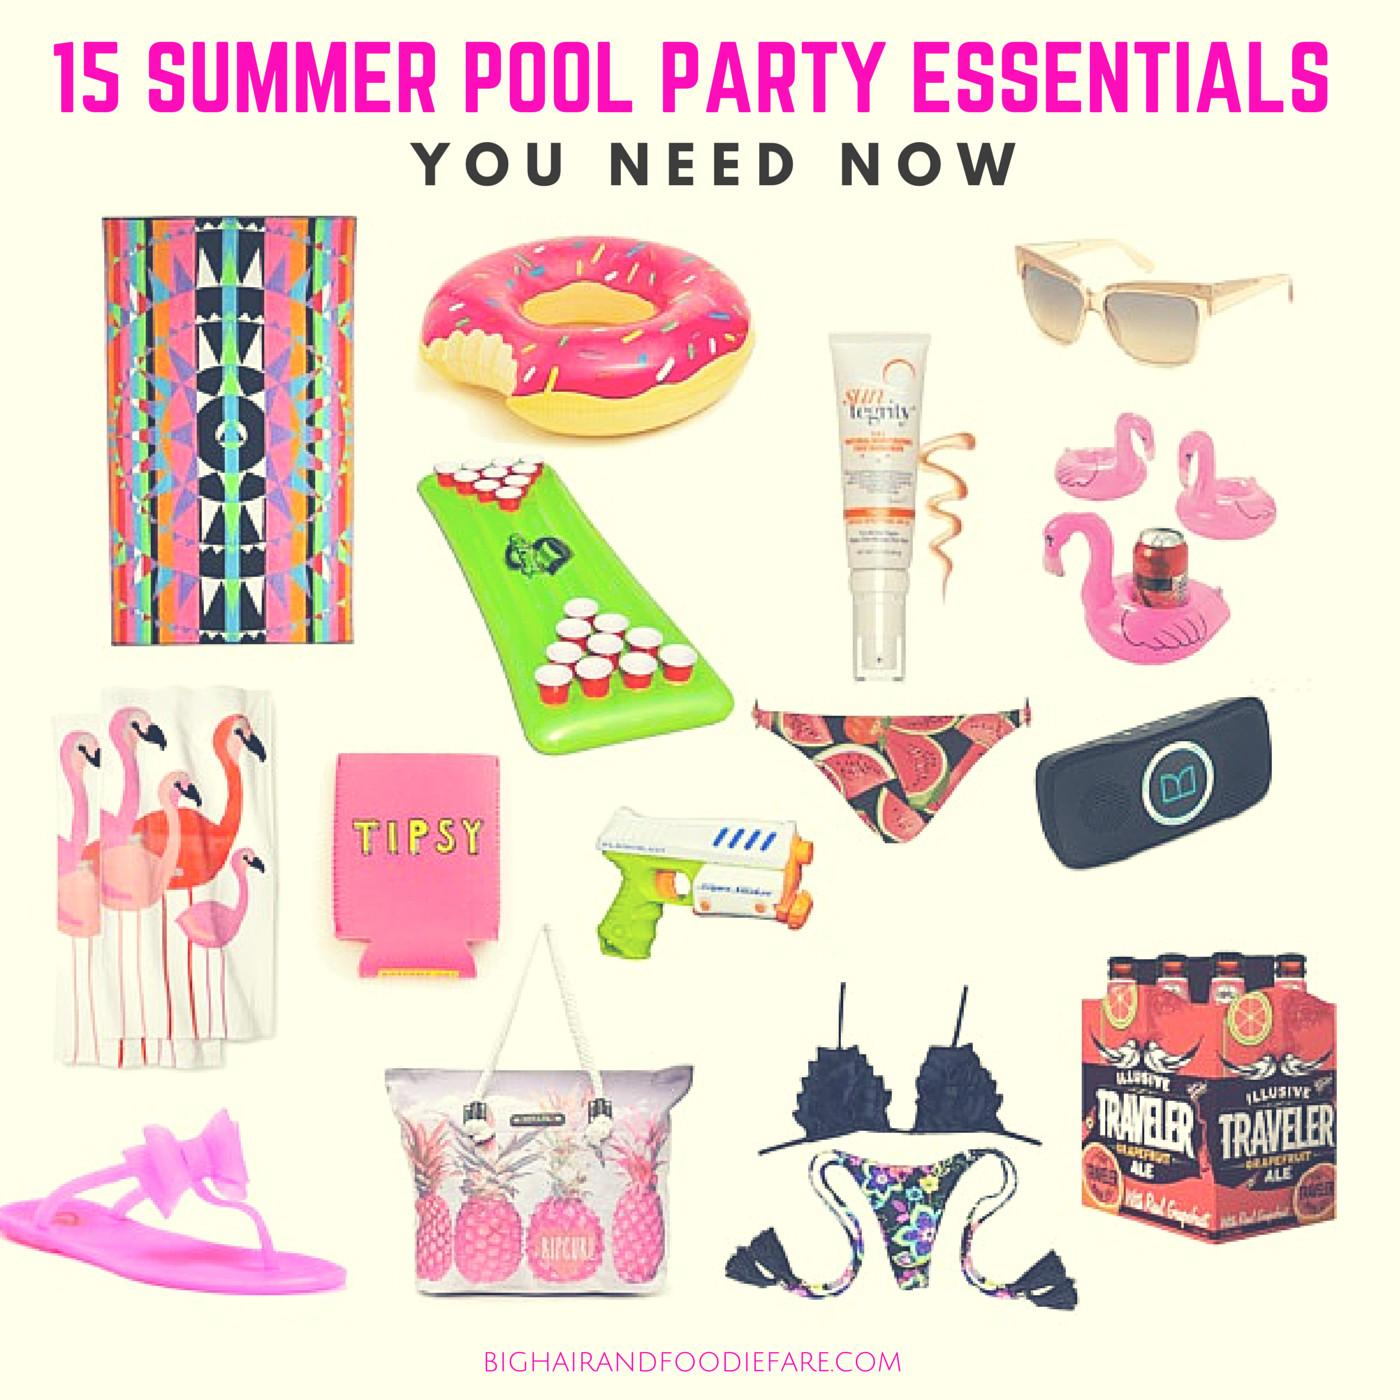 Summer Pool Party Essentials Need Now